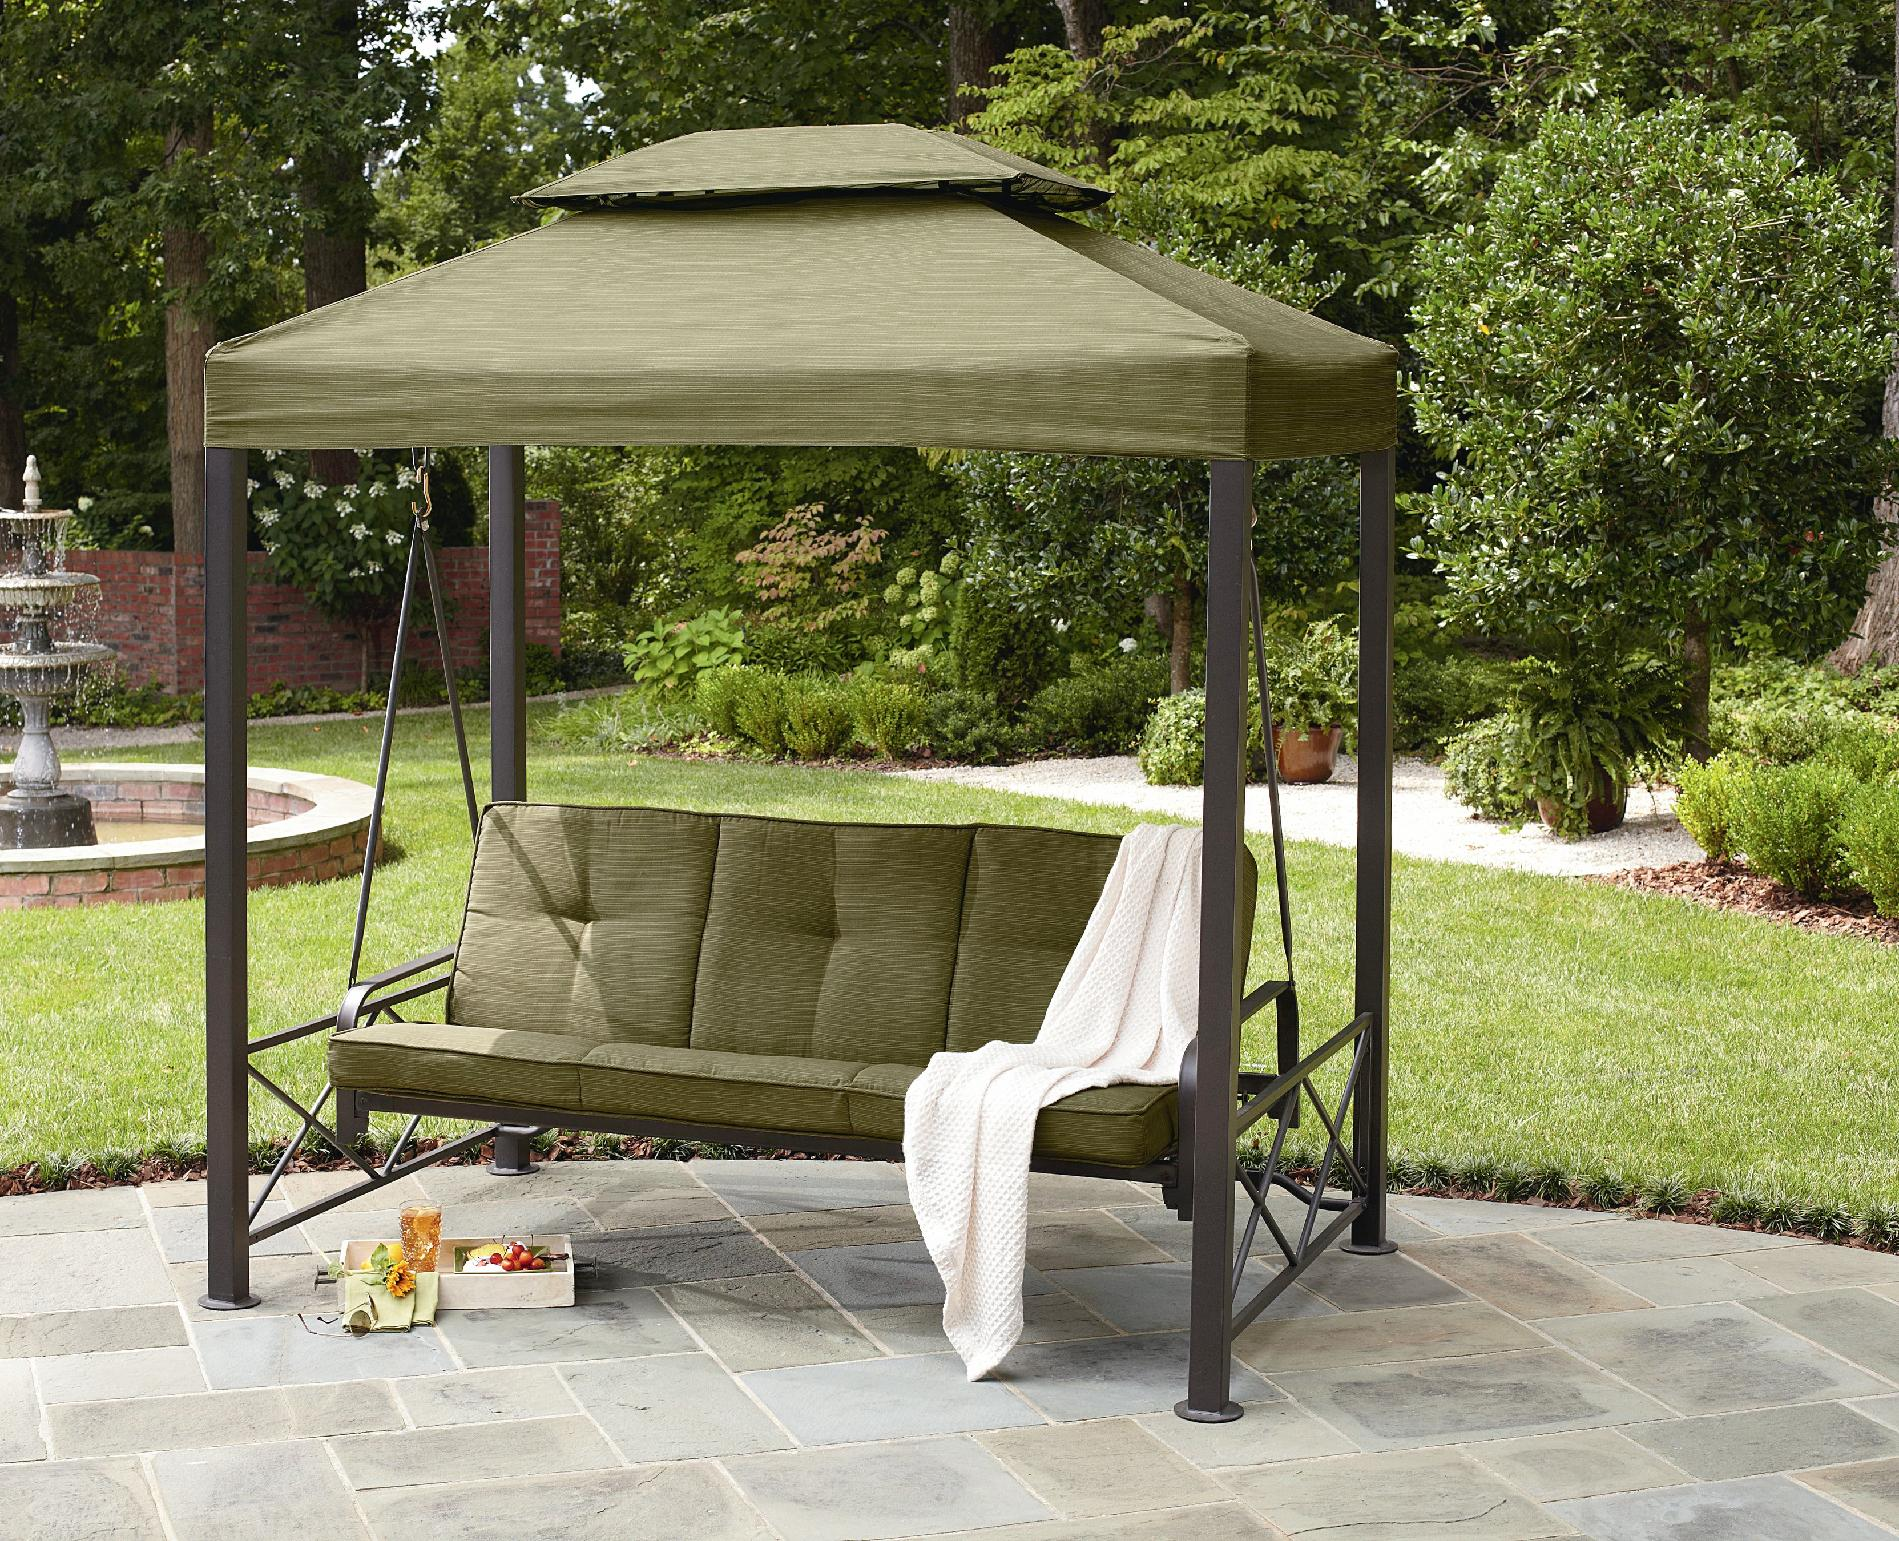 Essential tips on finding great patio swings at cheaper prices